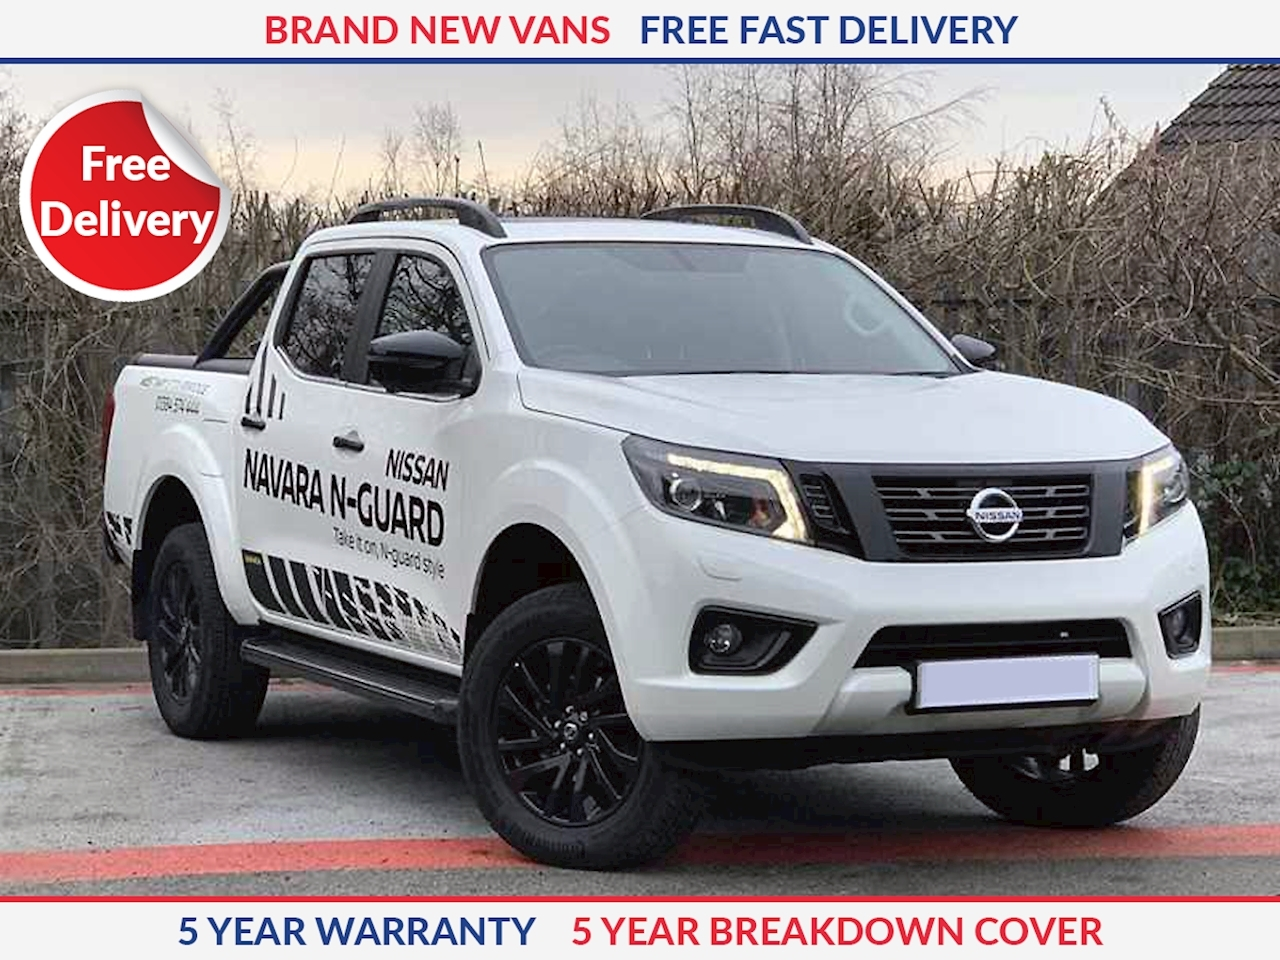 Nissan Navara N-Guard Double Cab 4x4